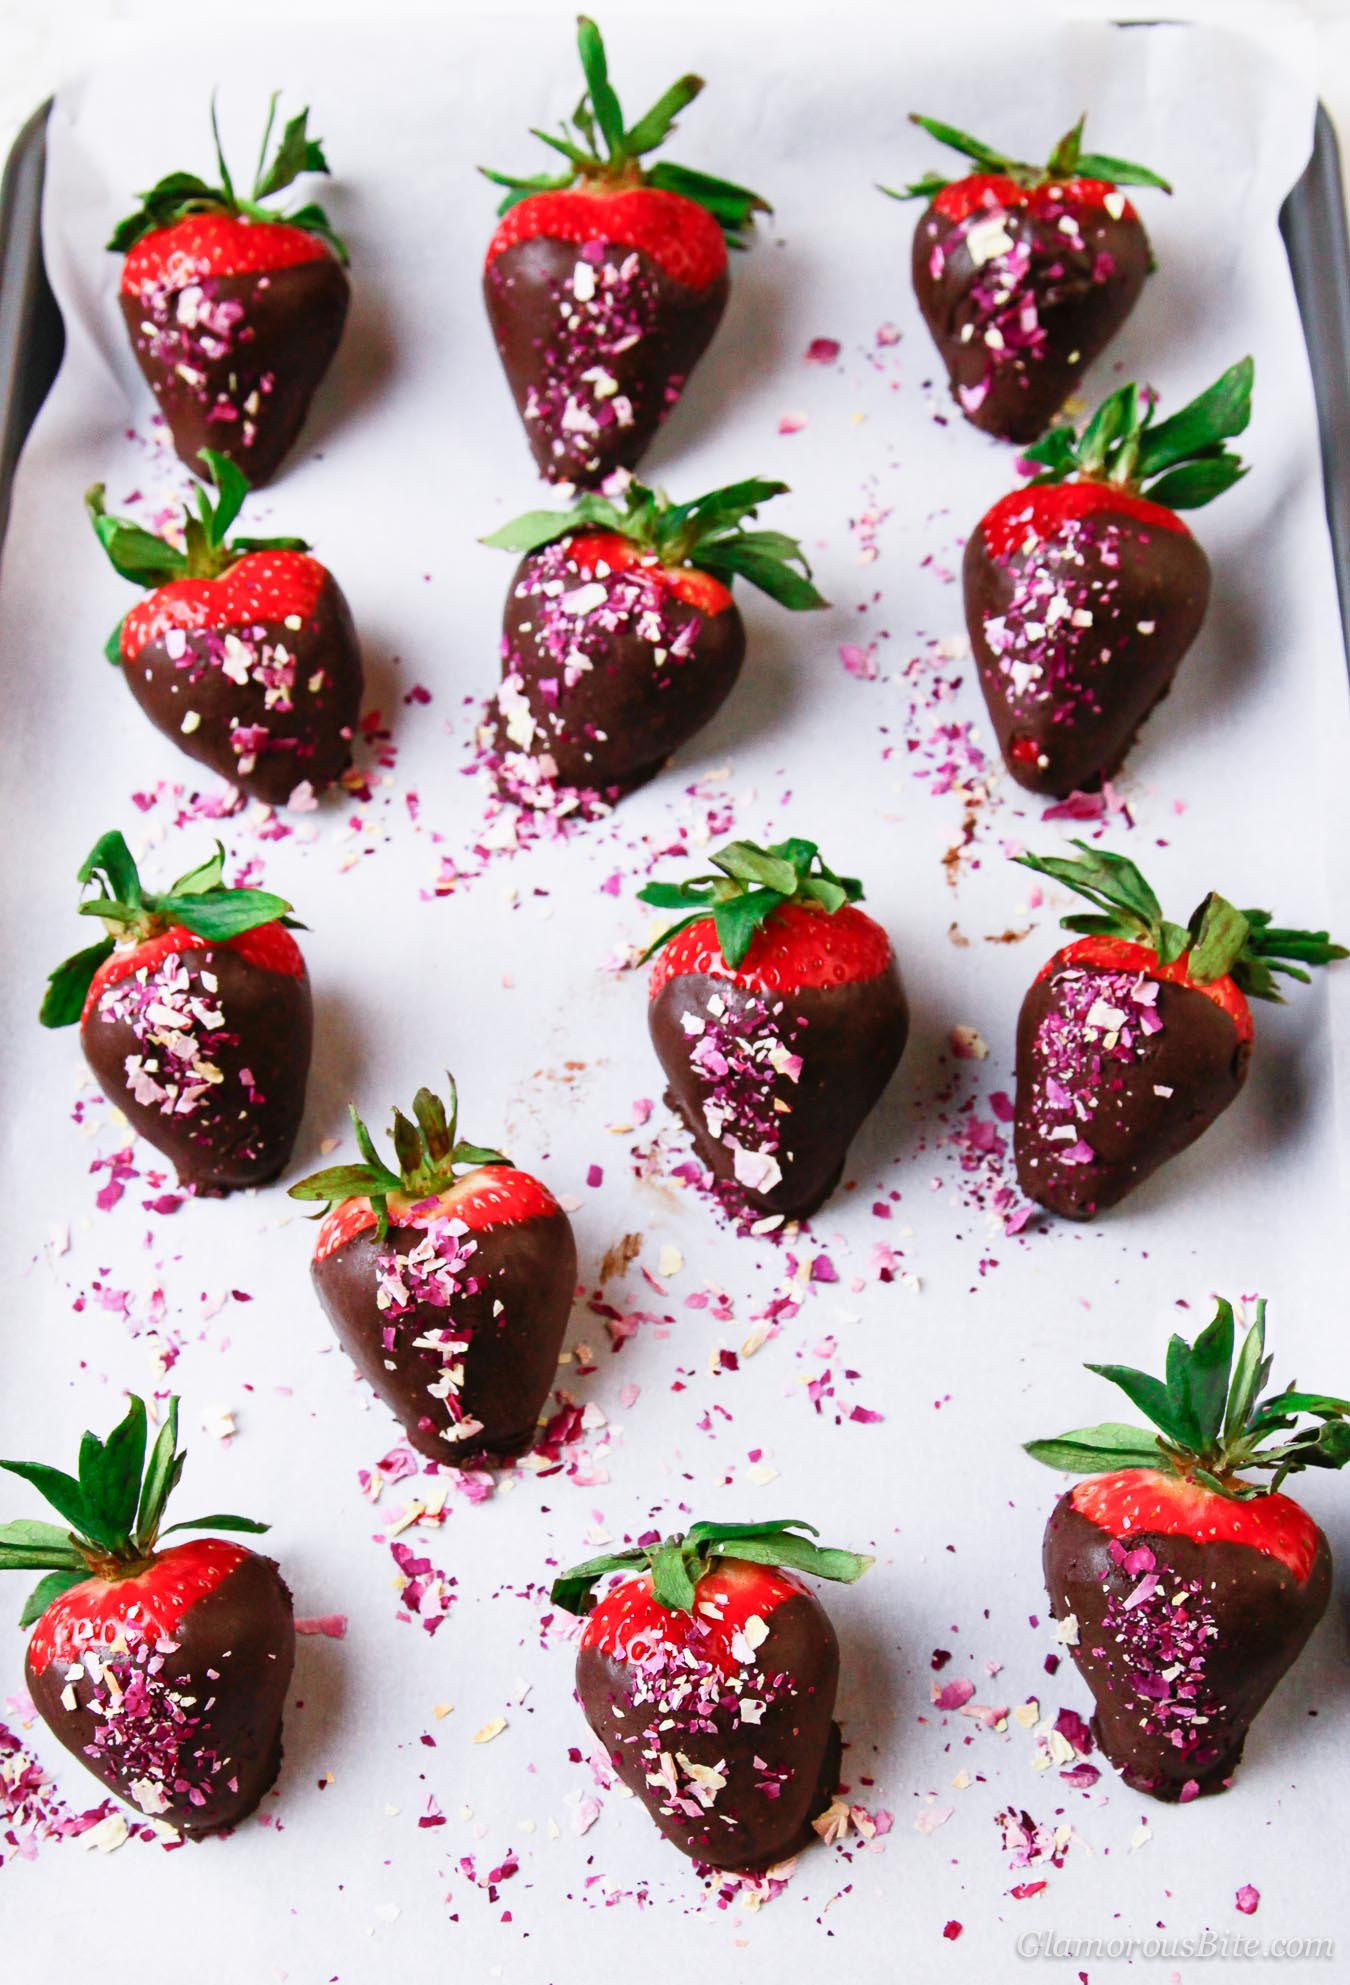 Coconut Oil Chocolate Covered Strawberries